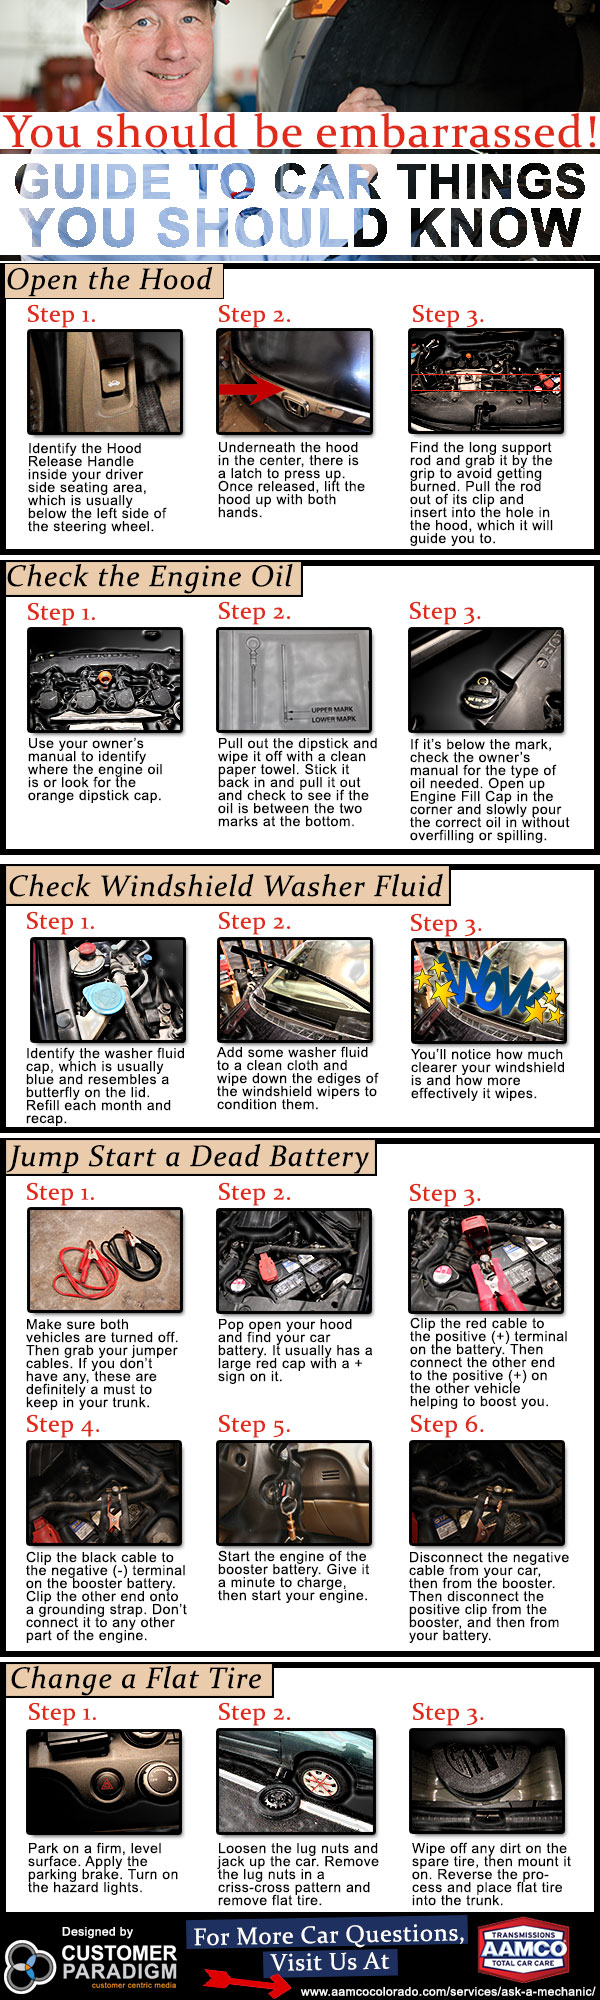 Guide to Car Things You Should Know Infographic - AAMCO Colorado - Transmission Repair